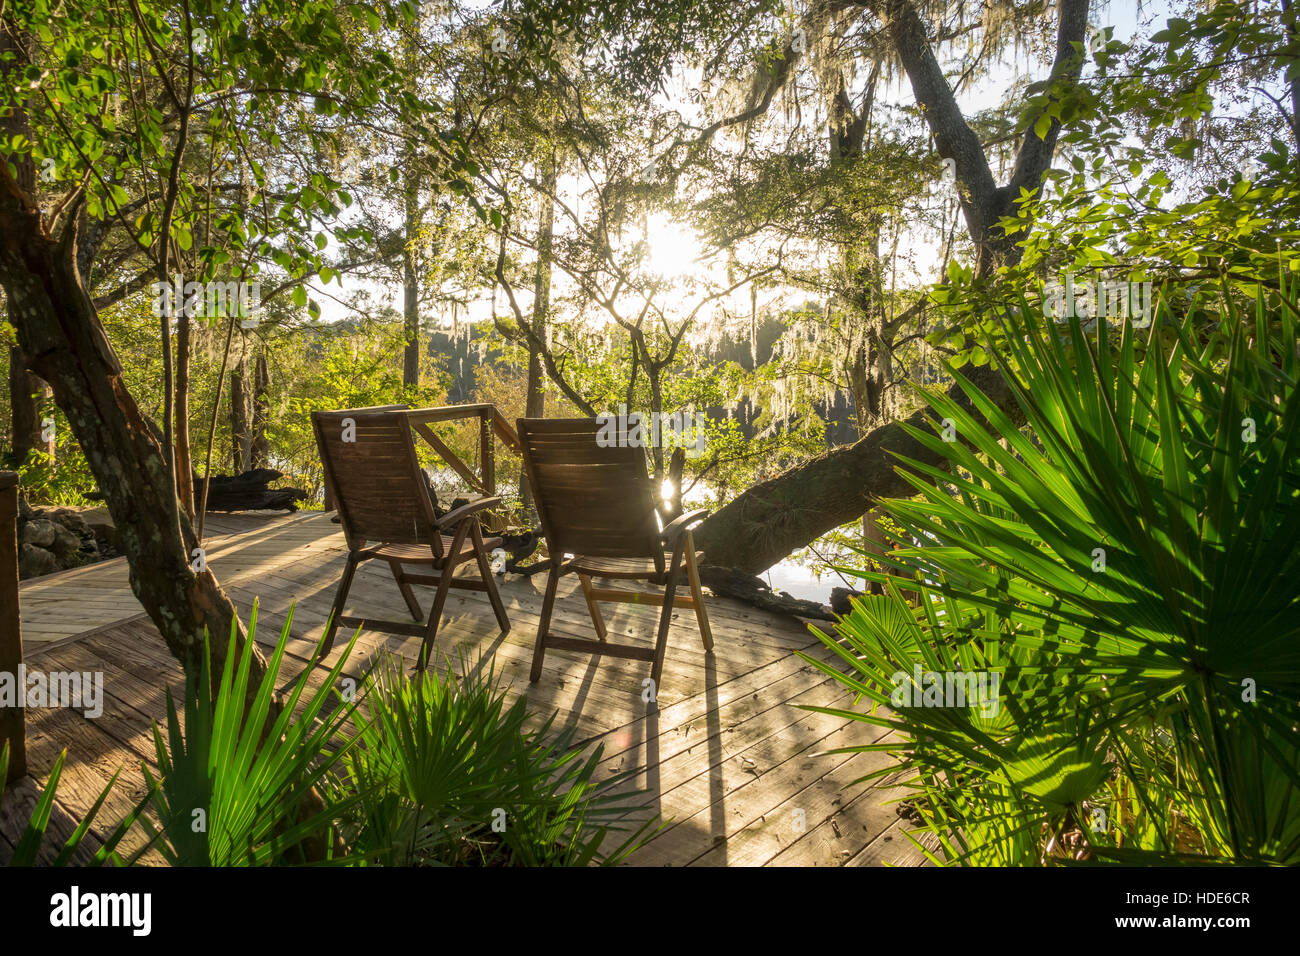 Deck chairs overlooking scenic river backlit by afternoon sun - Stock Image